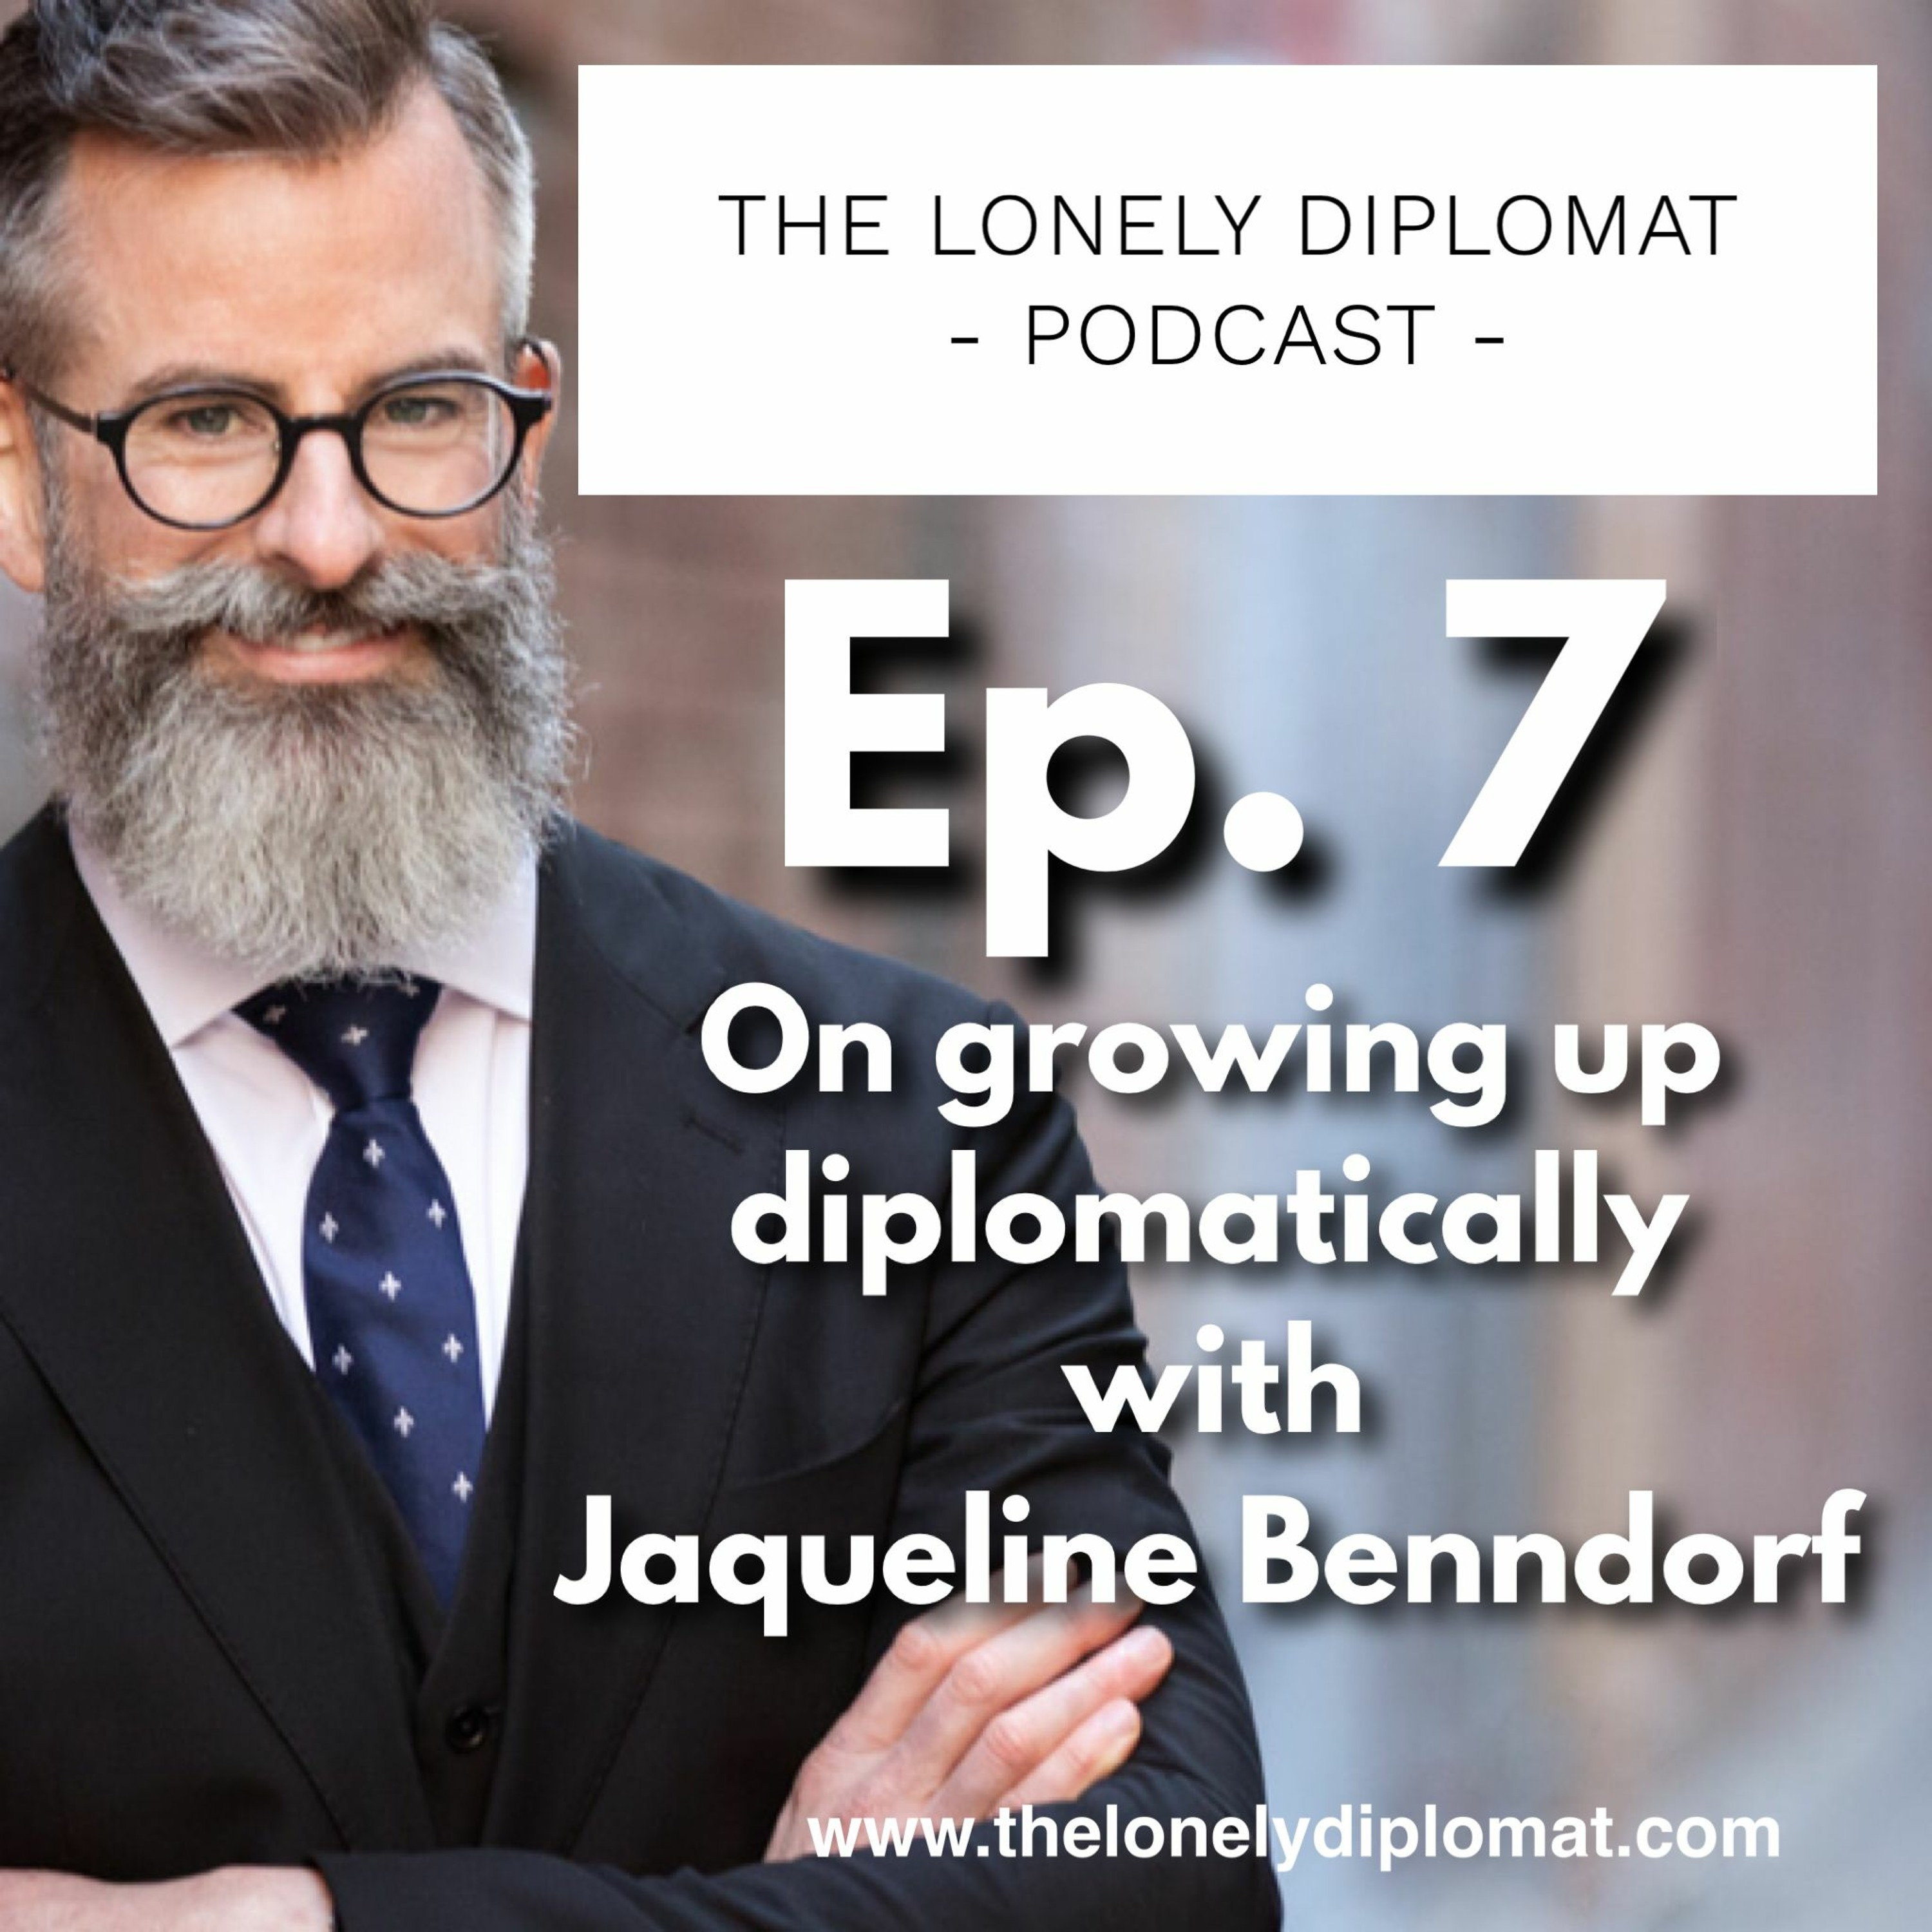 Ep. 7 - On growing up diplomatically with Jaqueline Benndorf